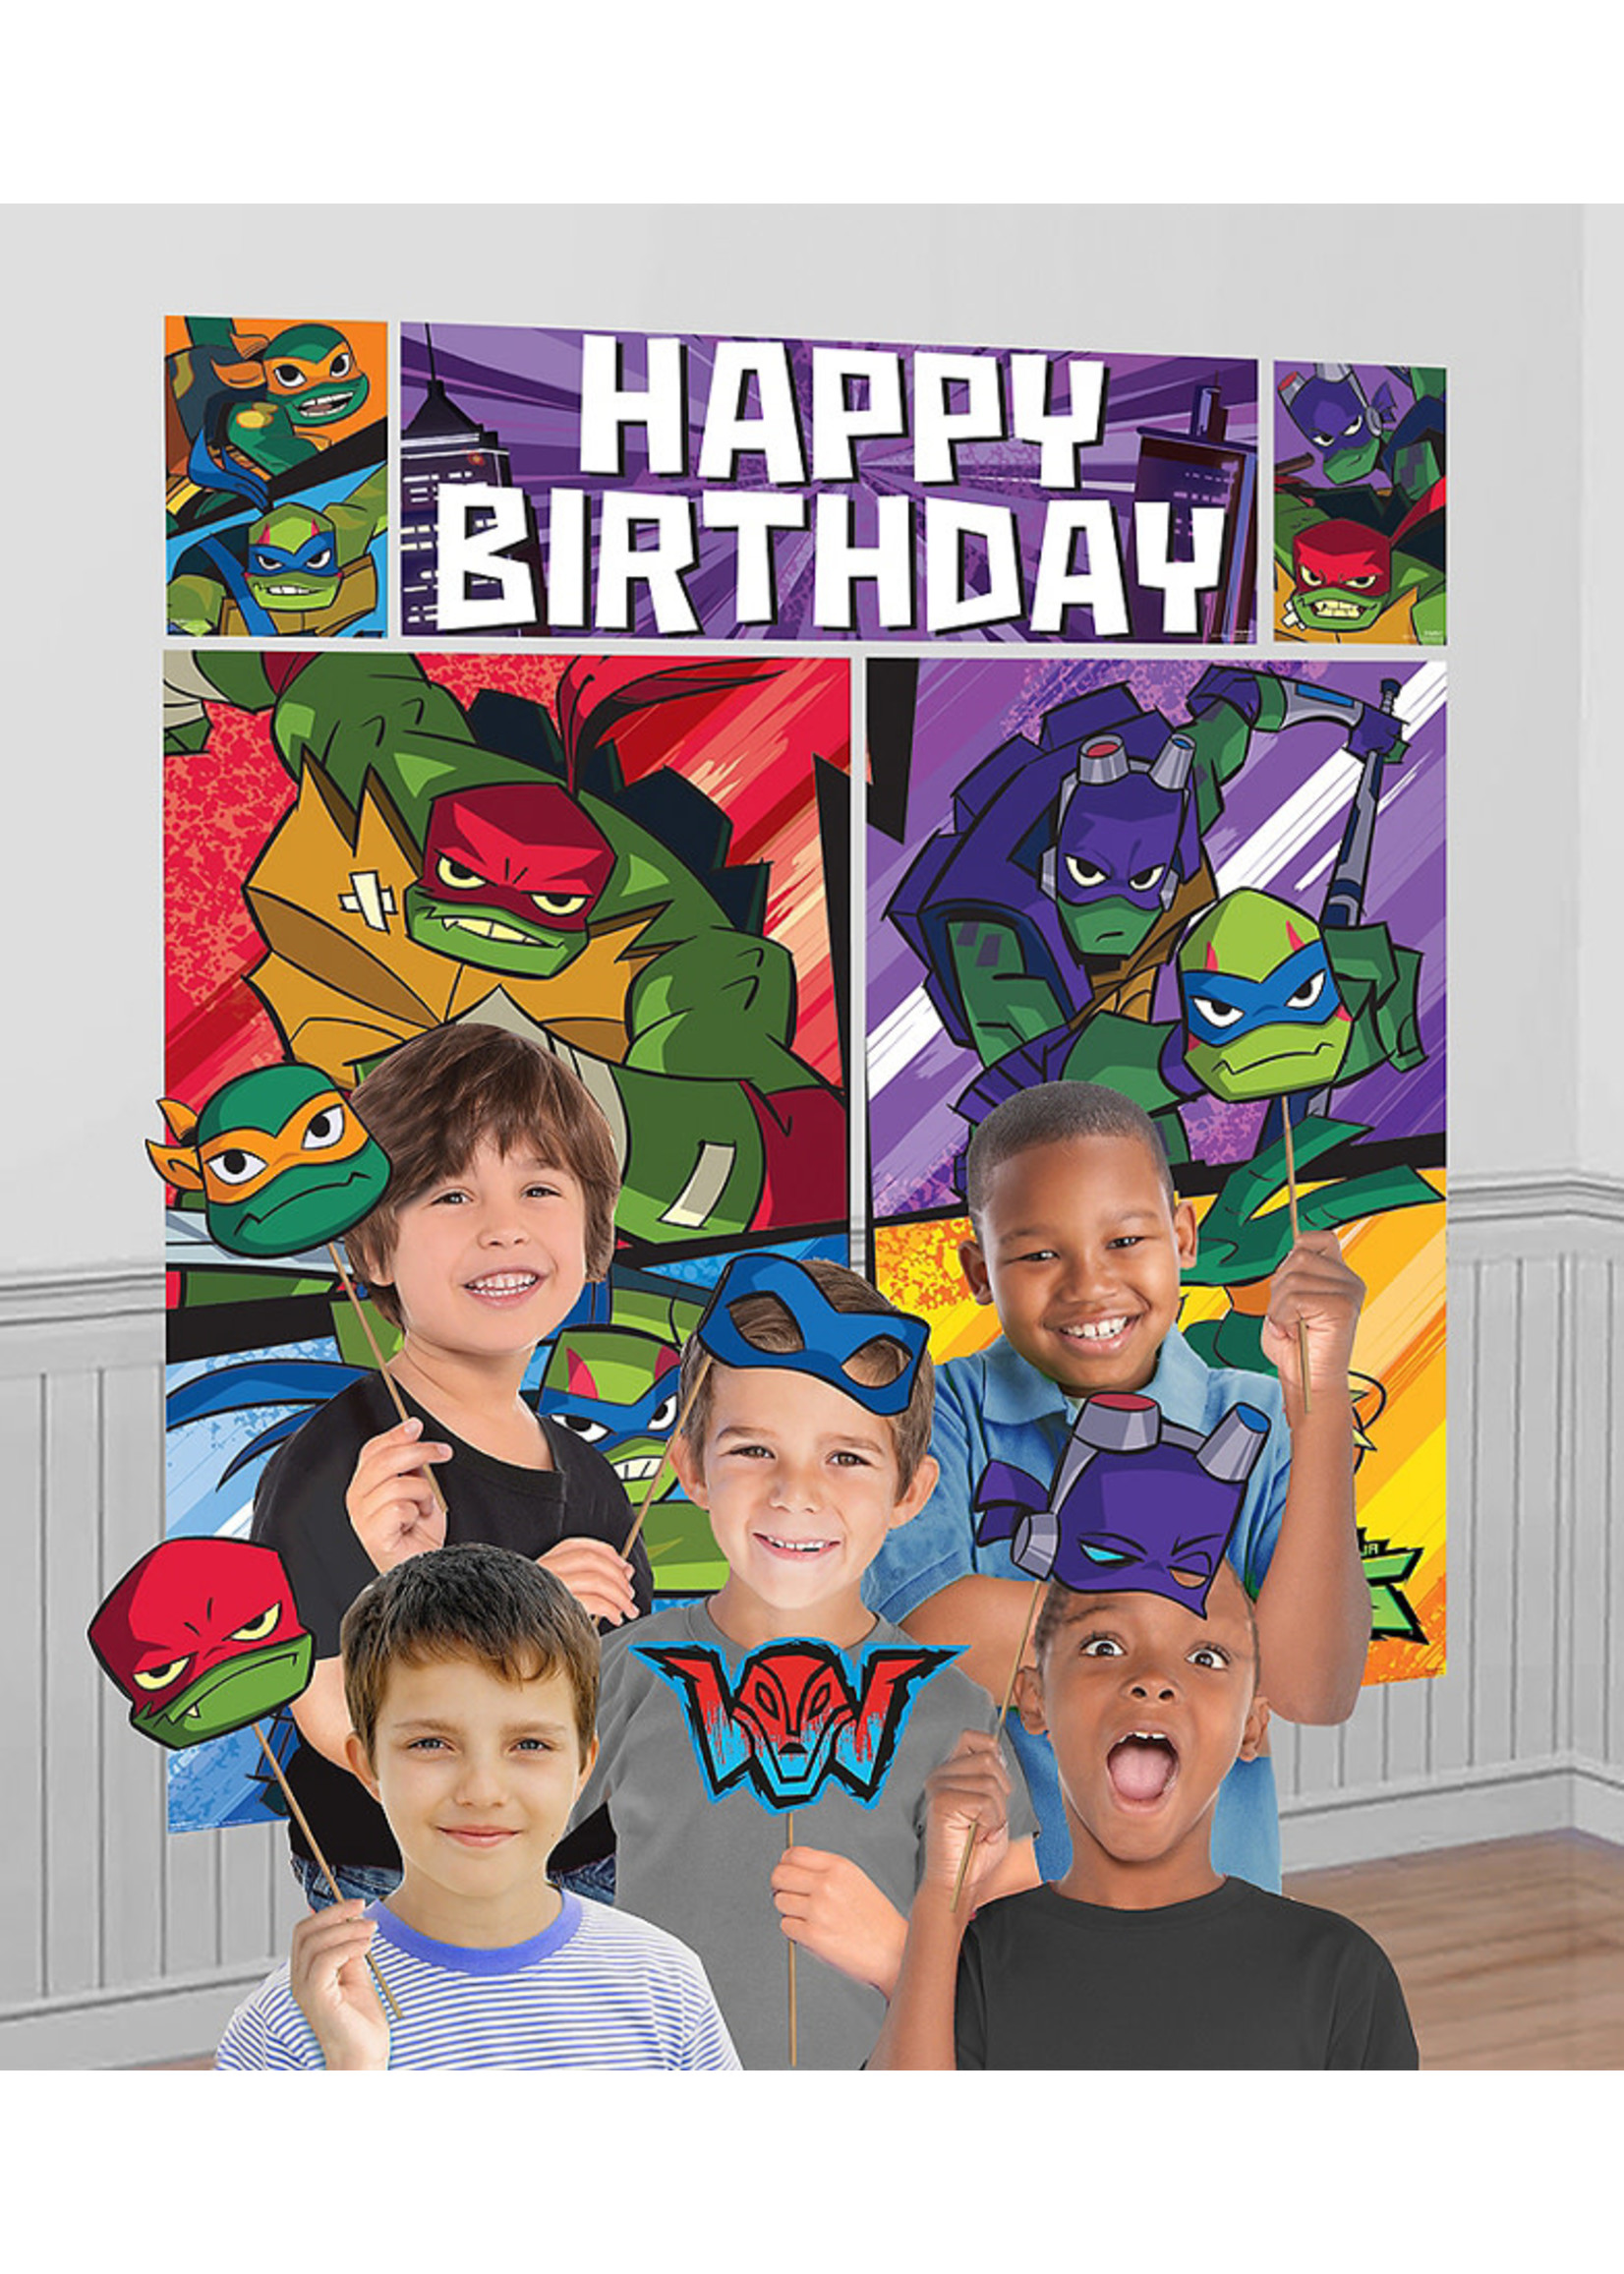 Rise of the Teenage Mutant Ninja Turtles Scene Setter with Photo Booth Props